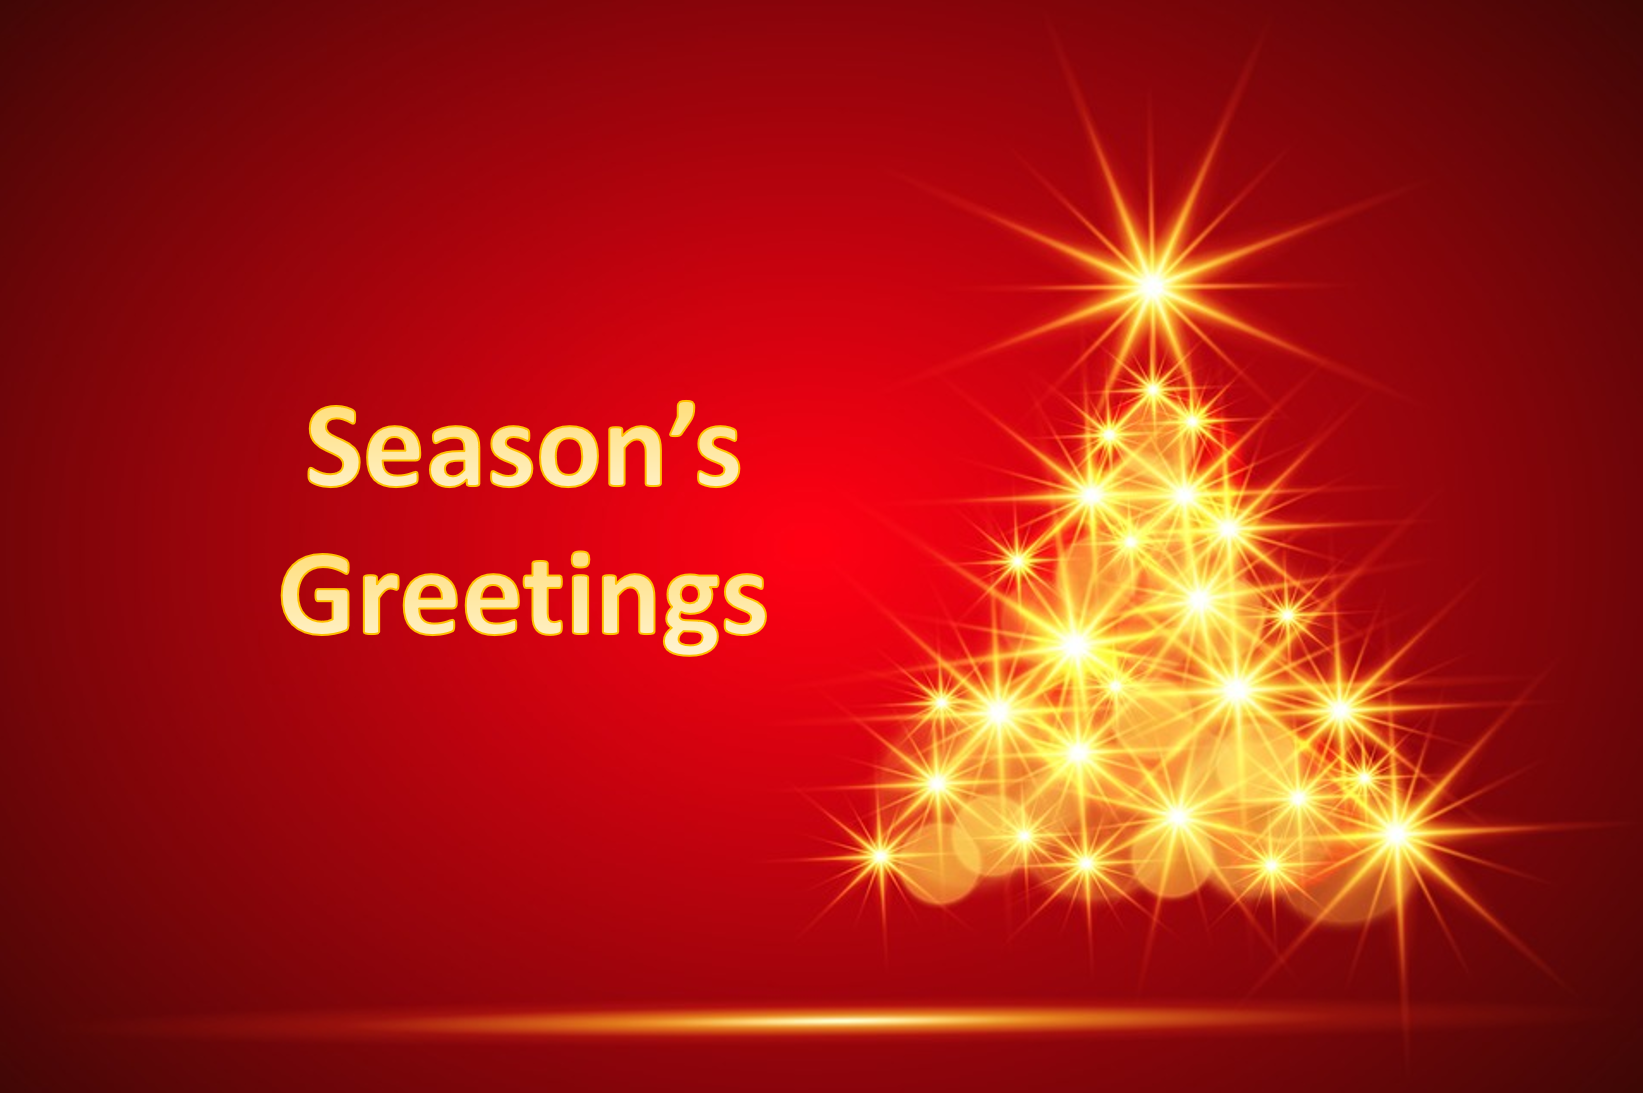 Season's Greetings from everybody at AC